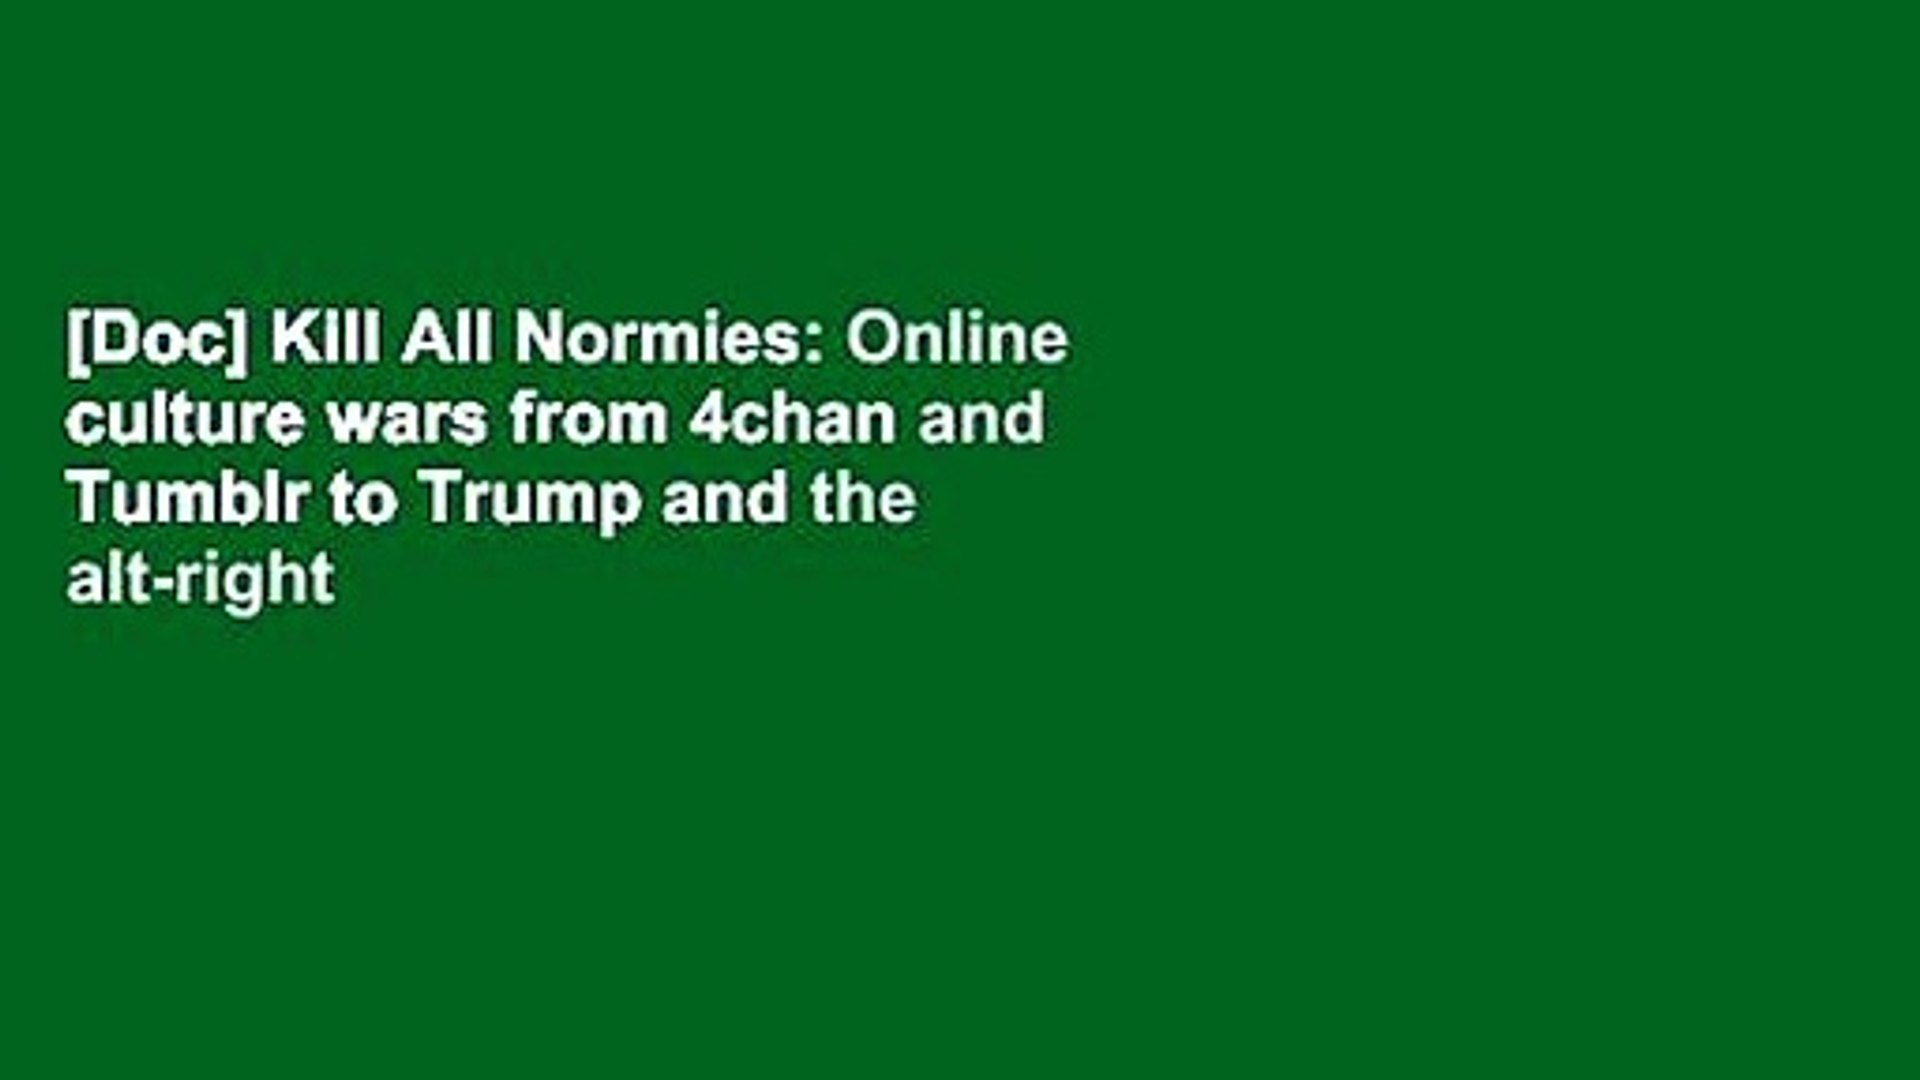 [Doc] Kill All Normies: Online culture wars from 4chan and Tumblr to Trump and the alt-right